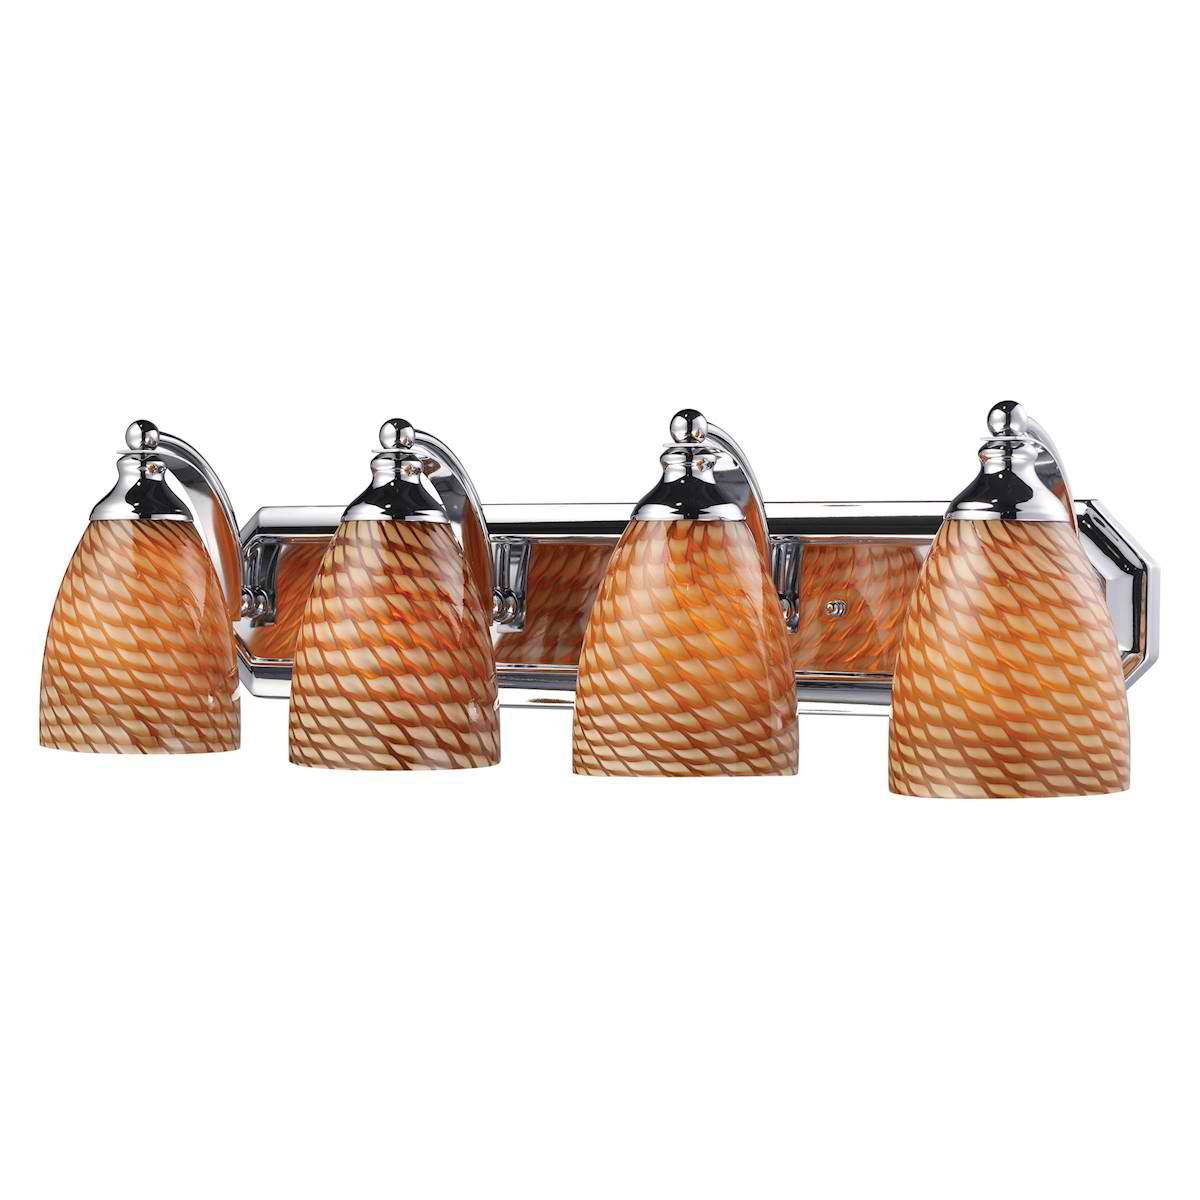 Vanity 4 Light Chrome with Cocoa Glass